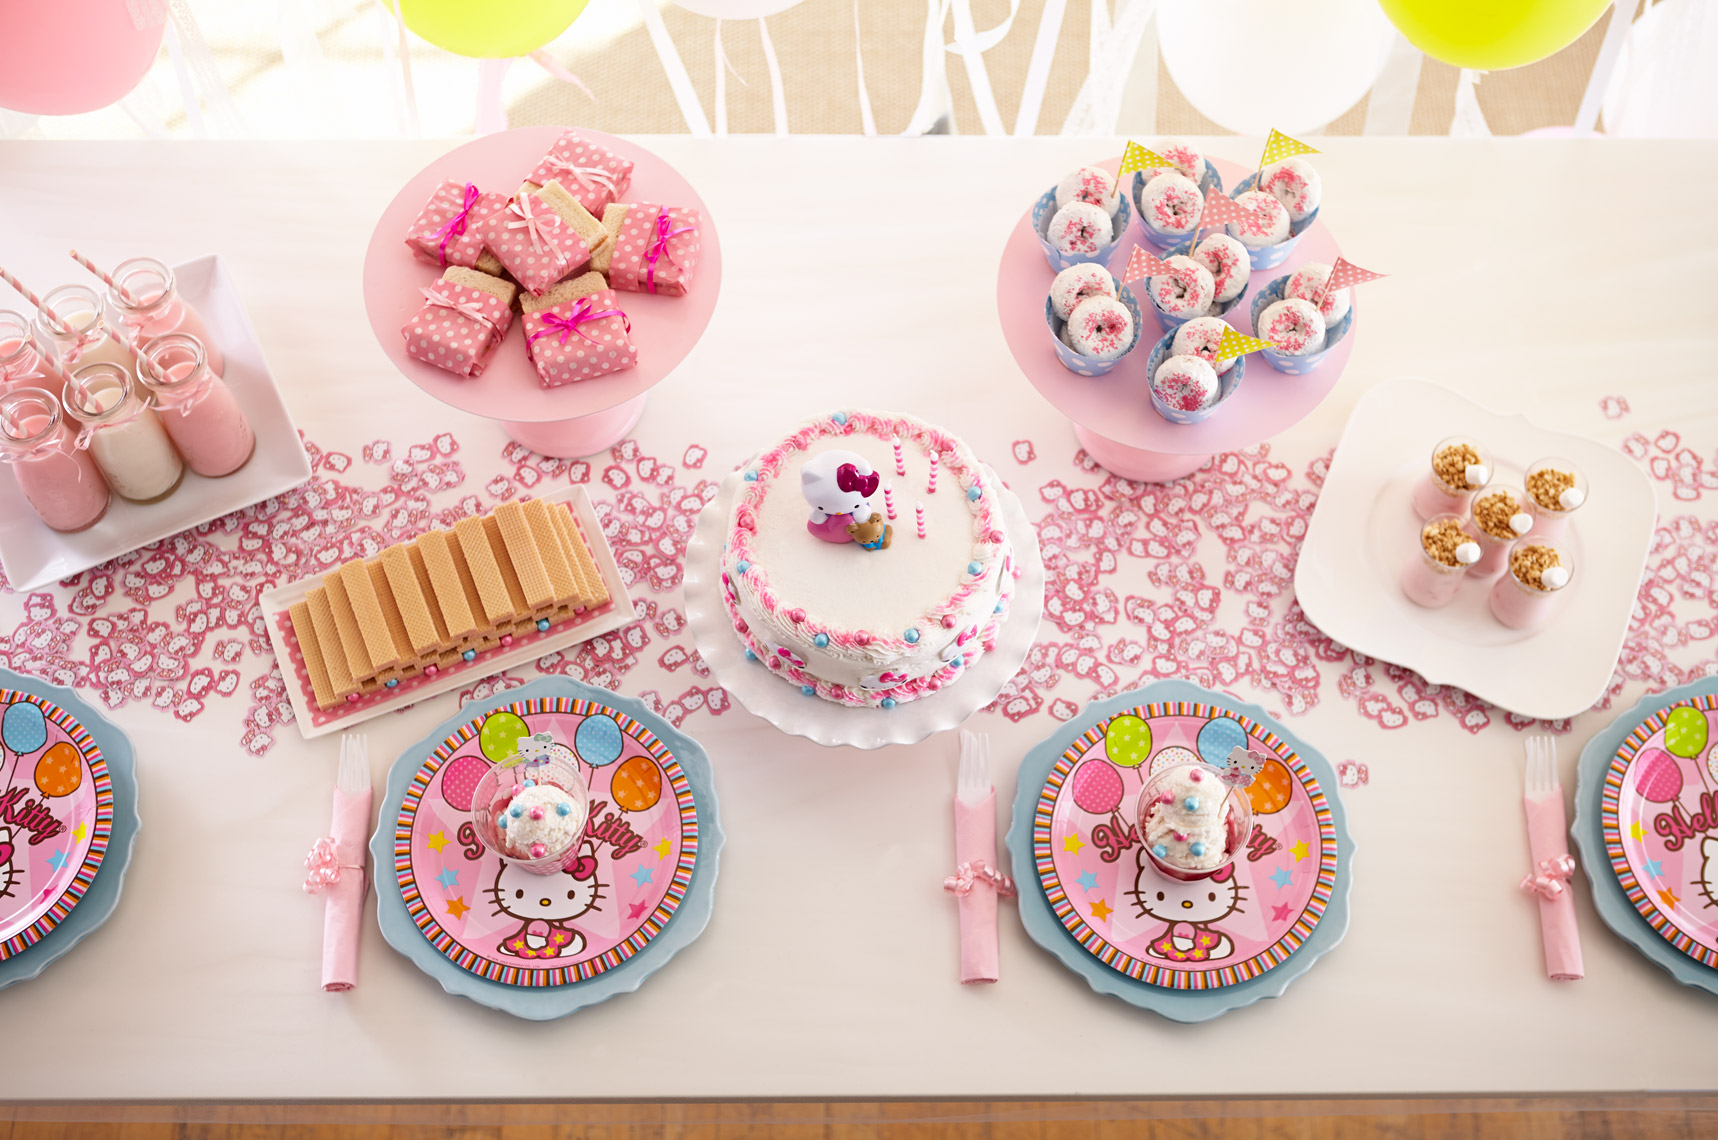 Rtchd_HelloKitty_Food_hero_133x_Crop.jpg